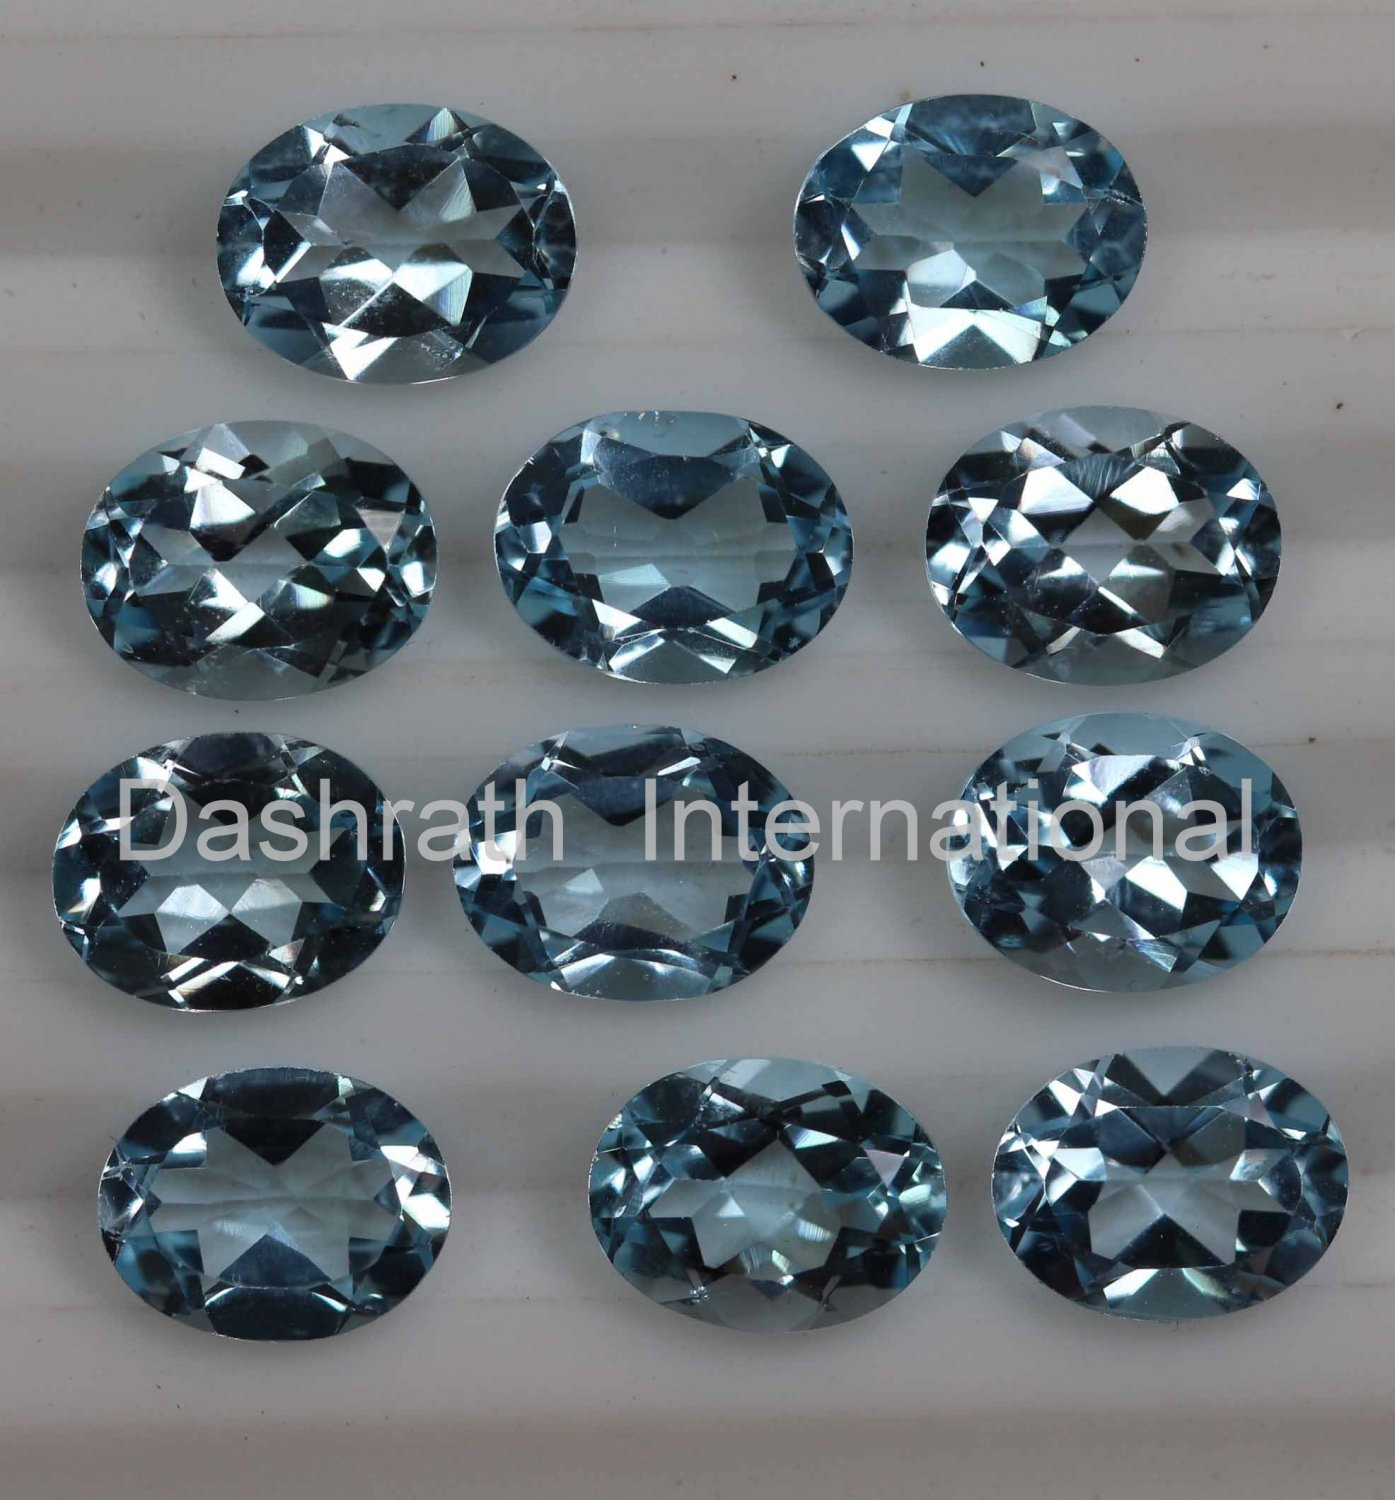 4x6mm  Natural Sky Blue Topaz Faceted Cut Oval  10 Pieces Lot  Top Quality Loose Gemstone